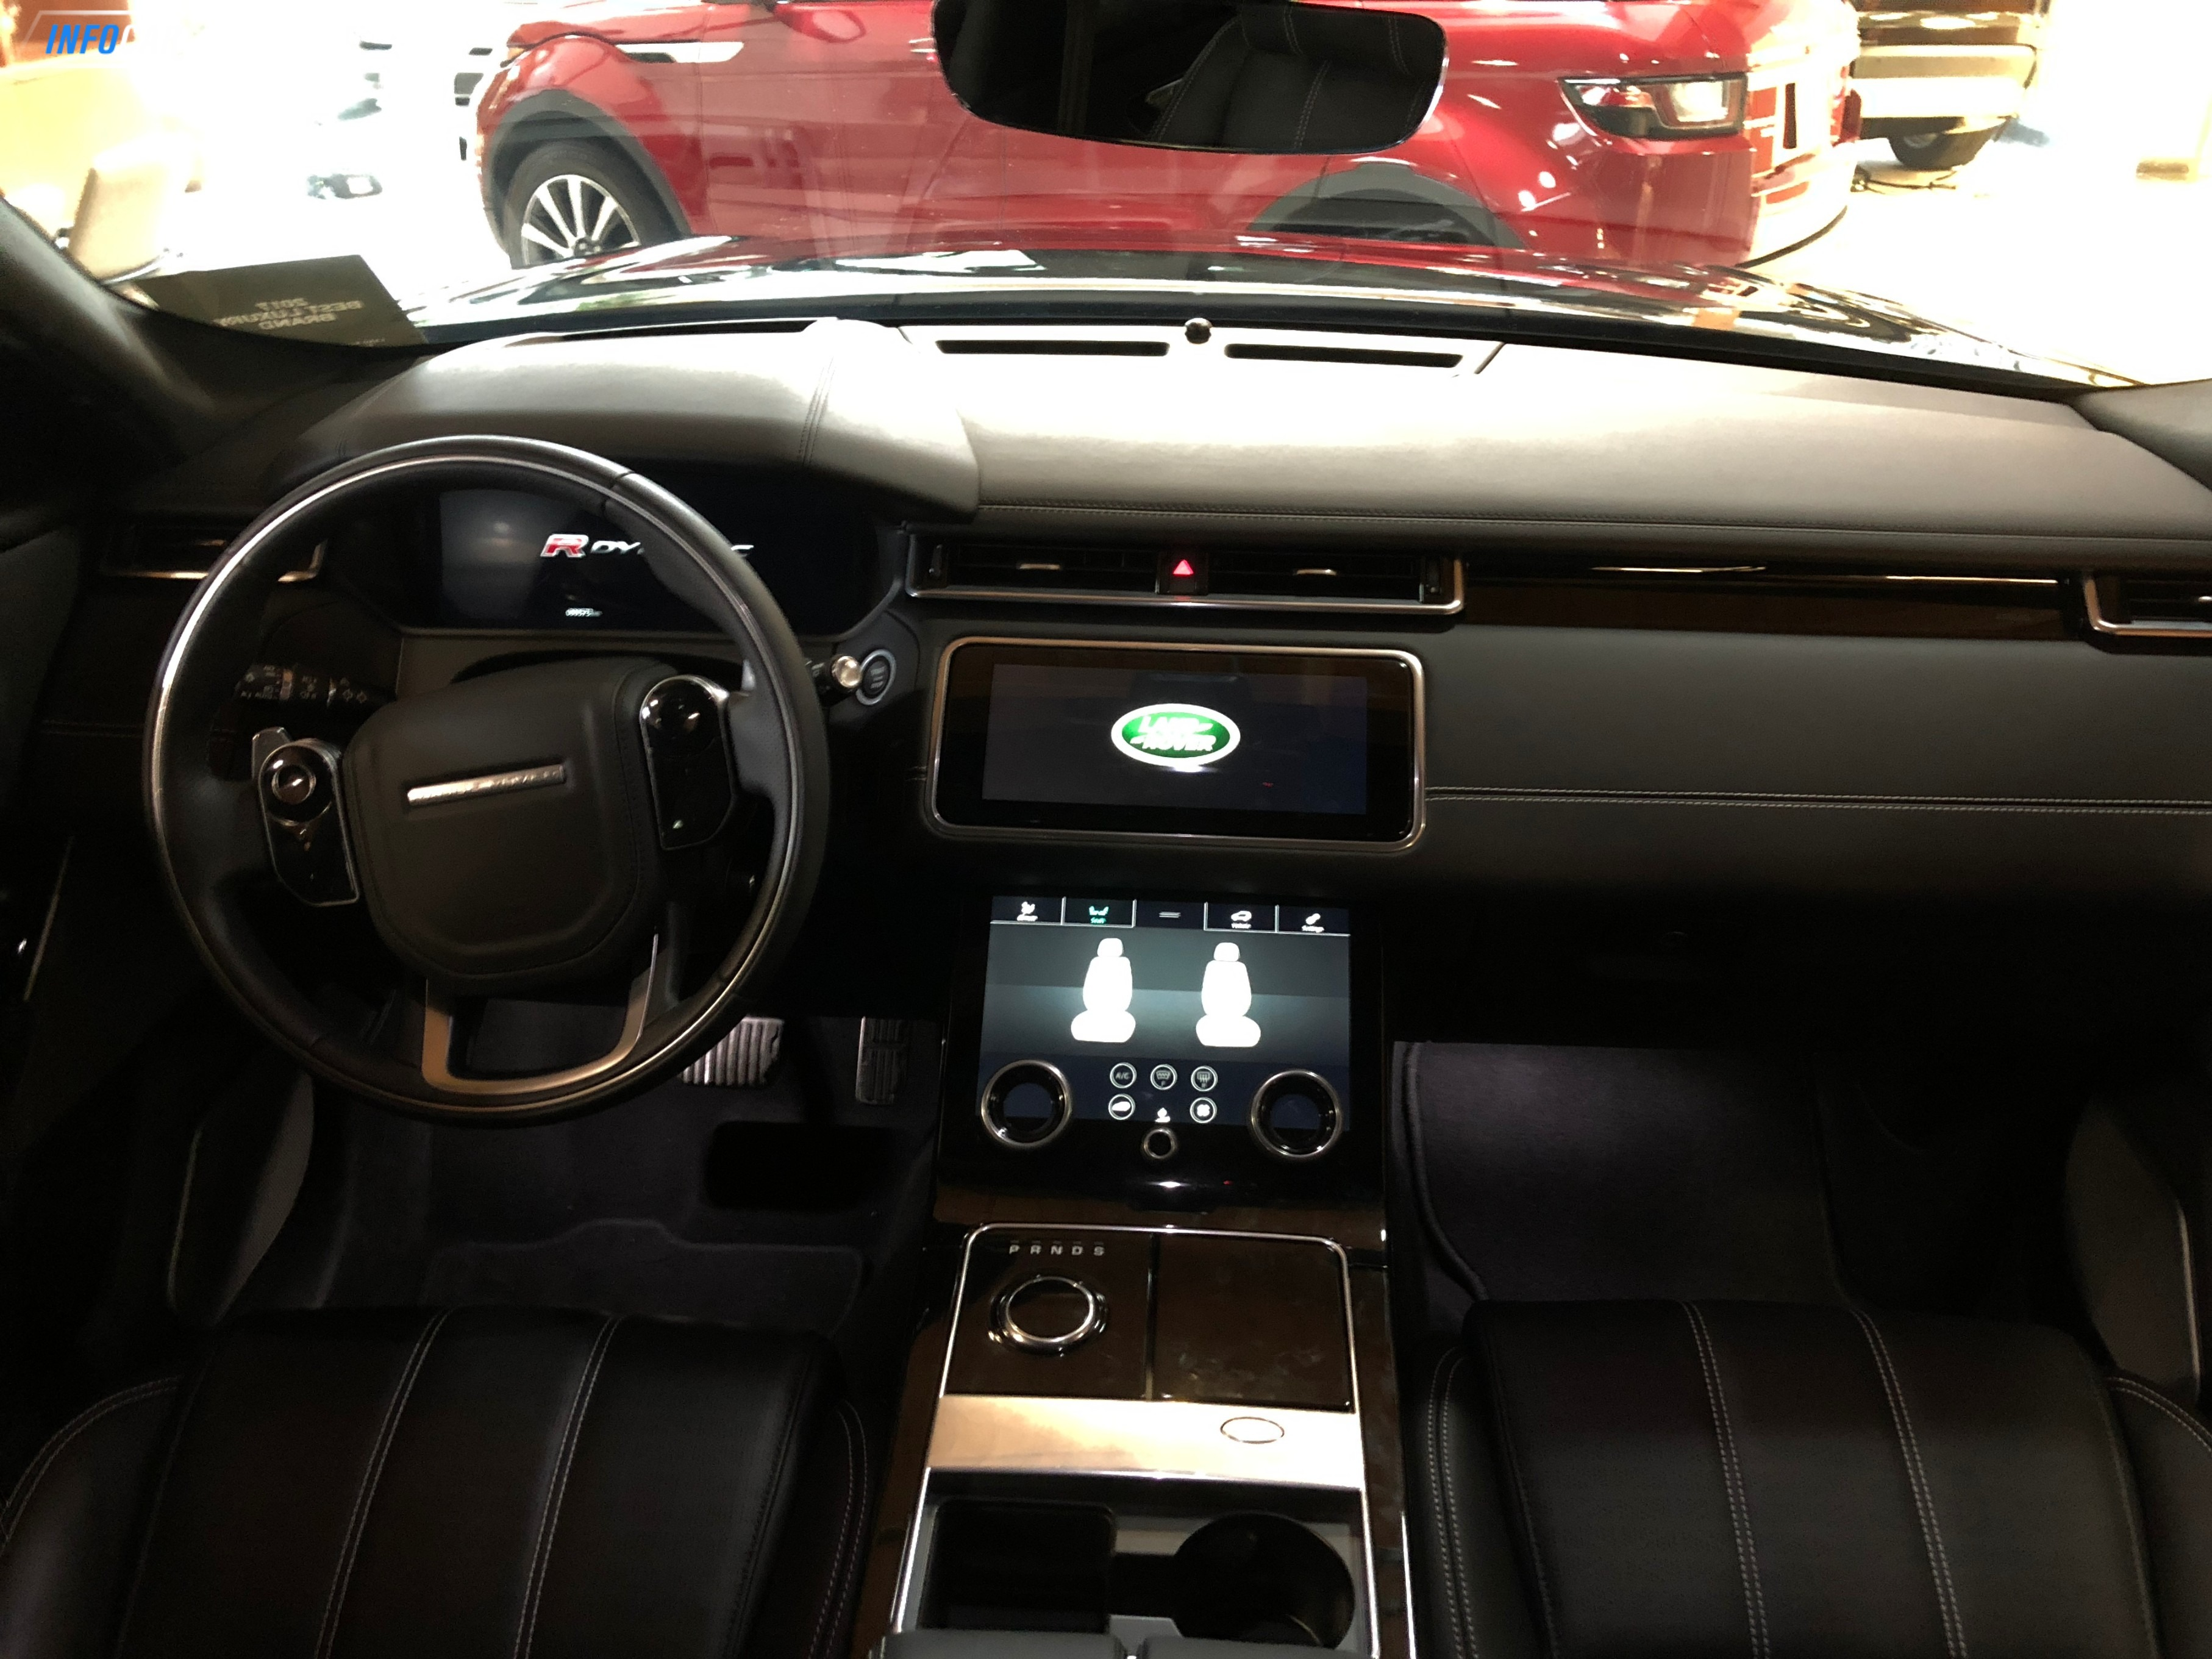 2019 Land Rover Range Rover Velar R-dynamic HSE P380 - INFOCAR - Toronto's Most Comprehensive New and Used Auto Trading Platform